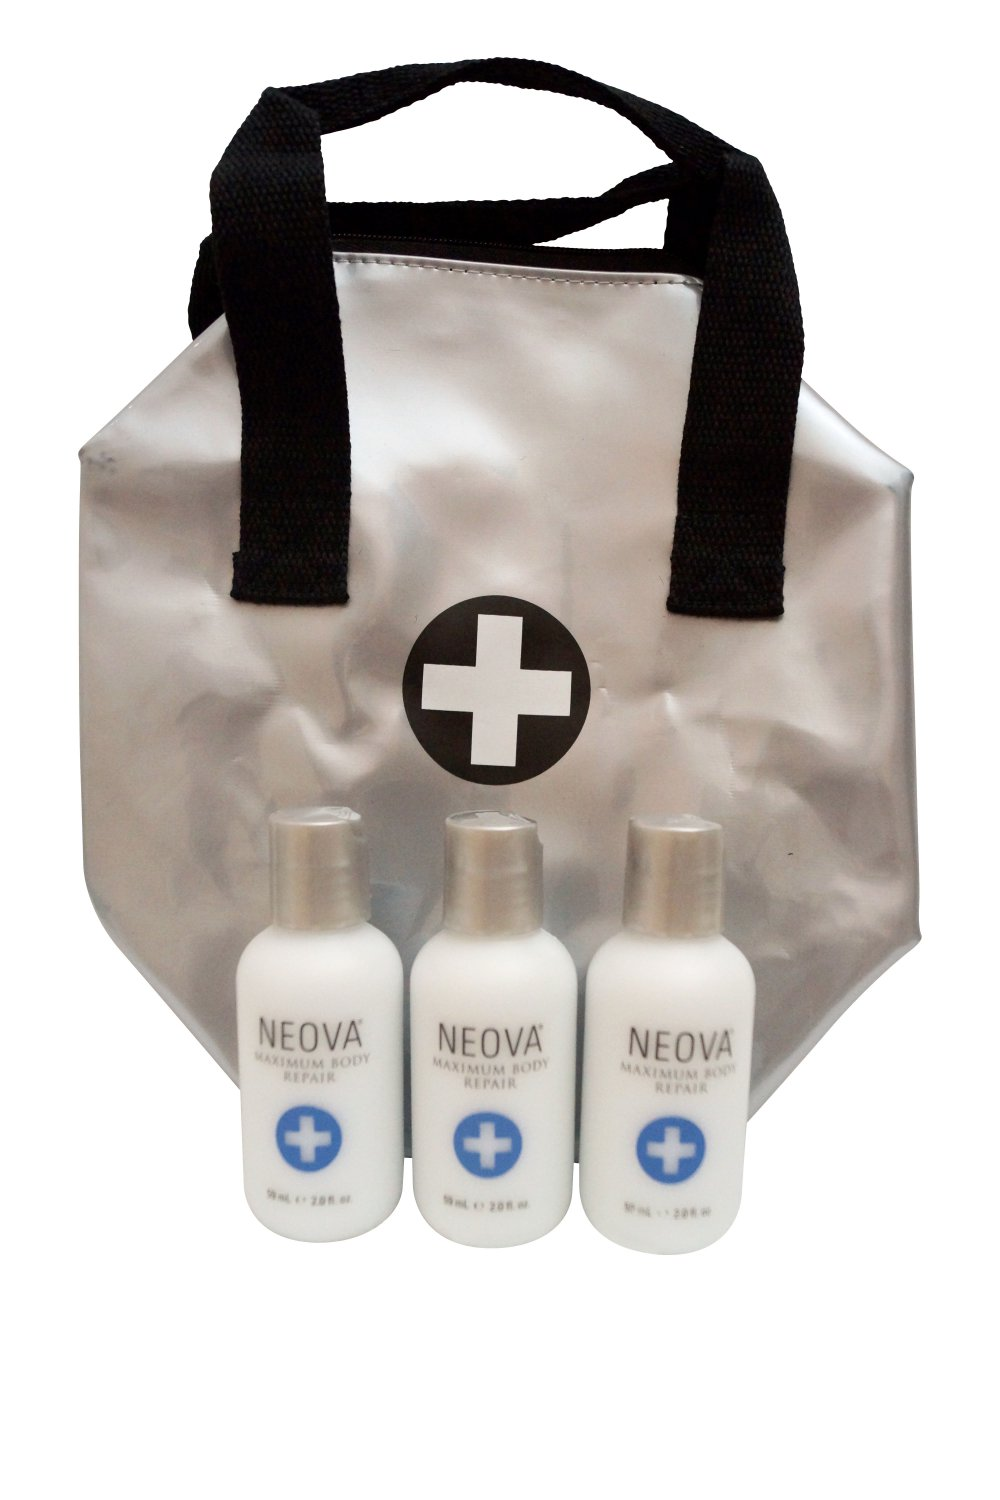 Neova Maximum Body Repair Trio with Travel Case